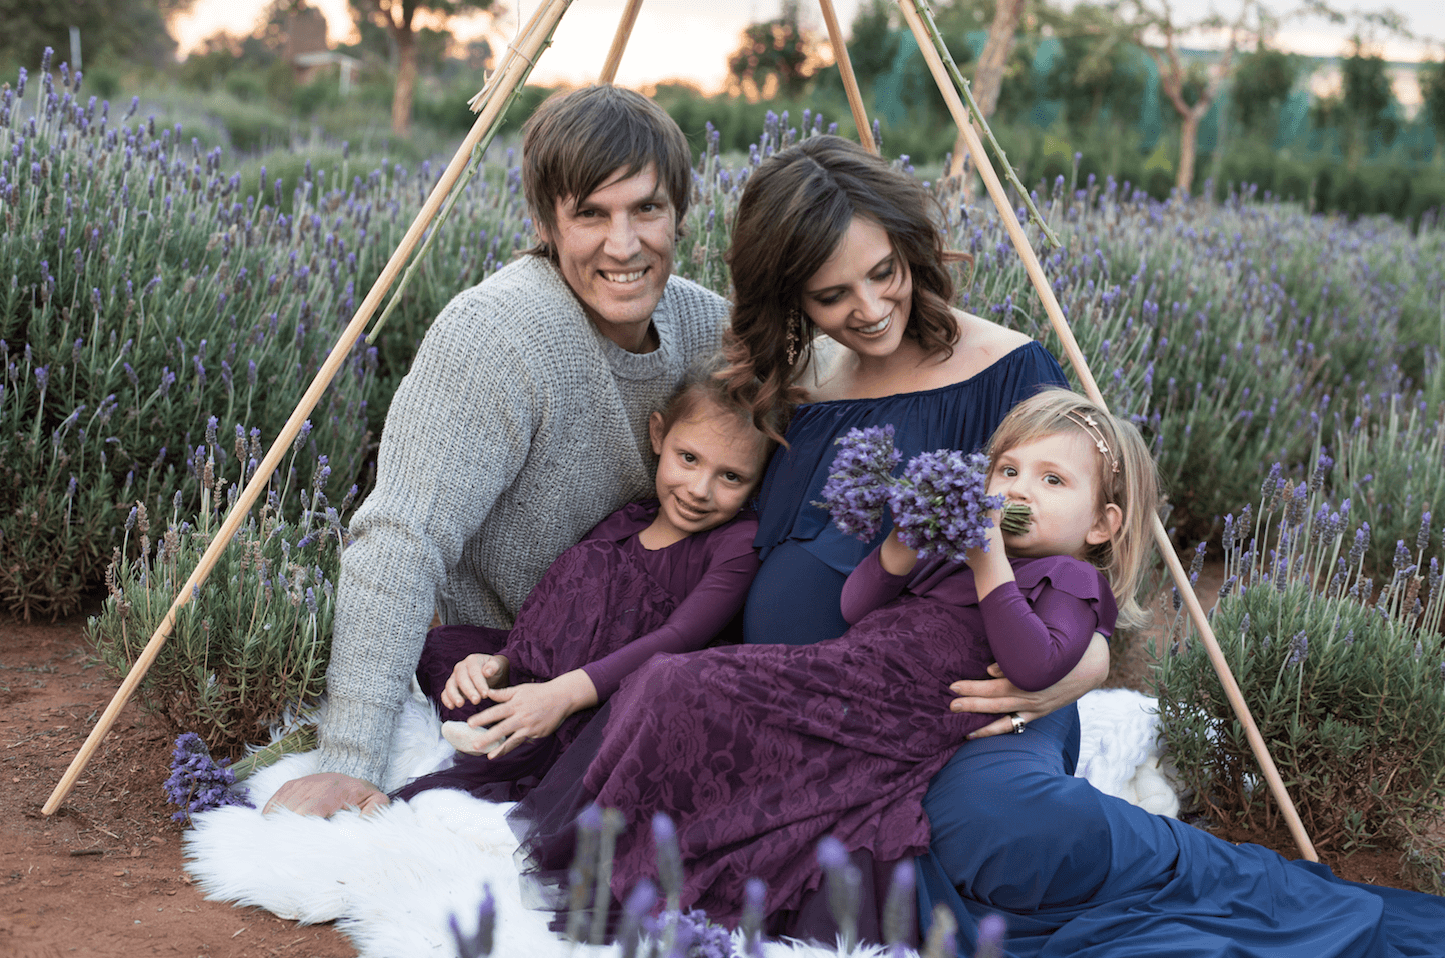 Maternity photoshoot, Family Maternity photoshoot amongst the Lavender fields.